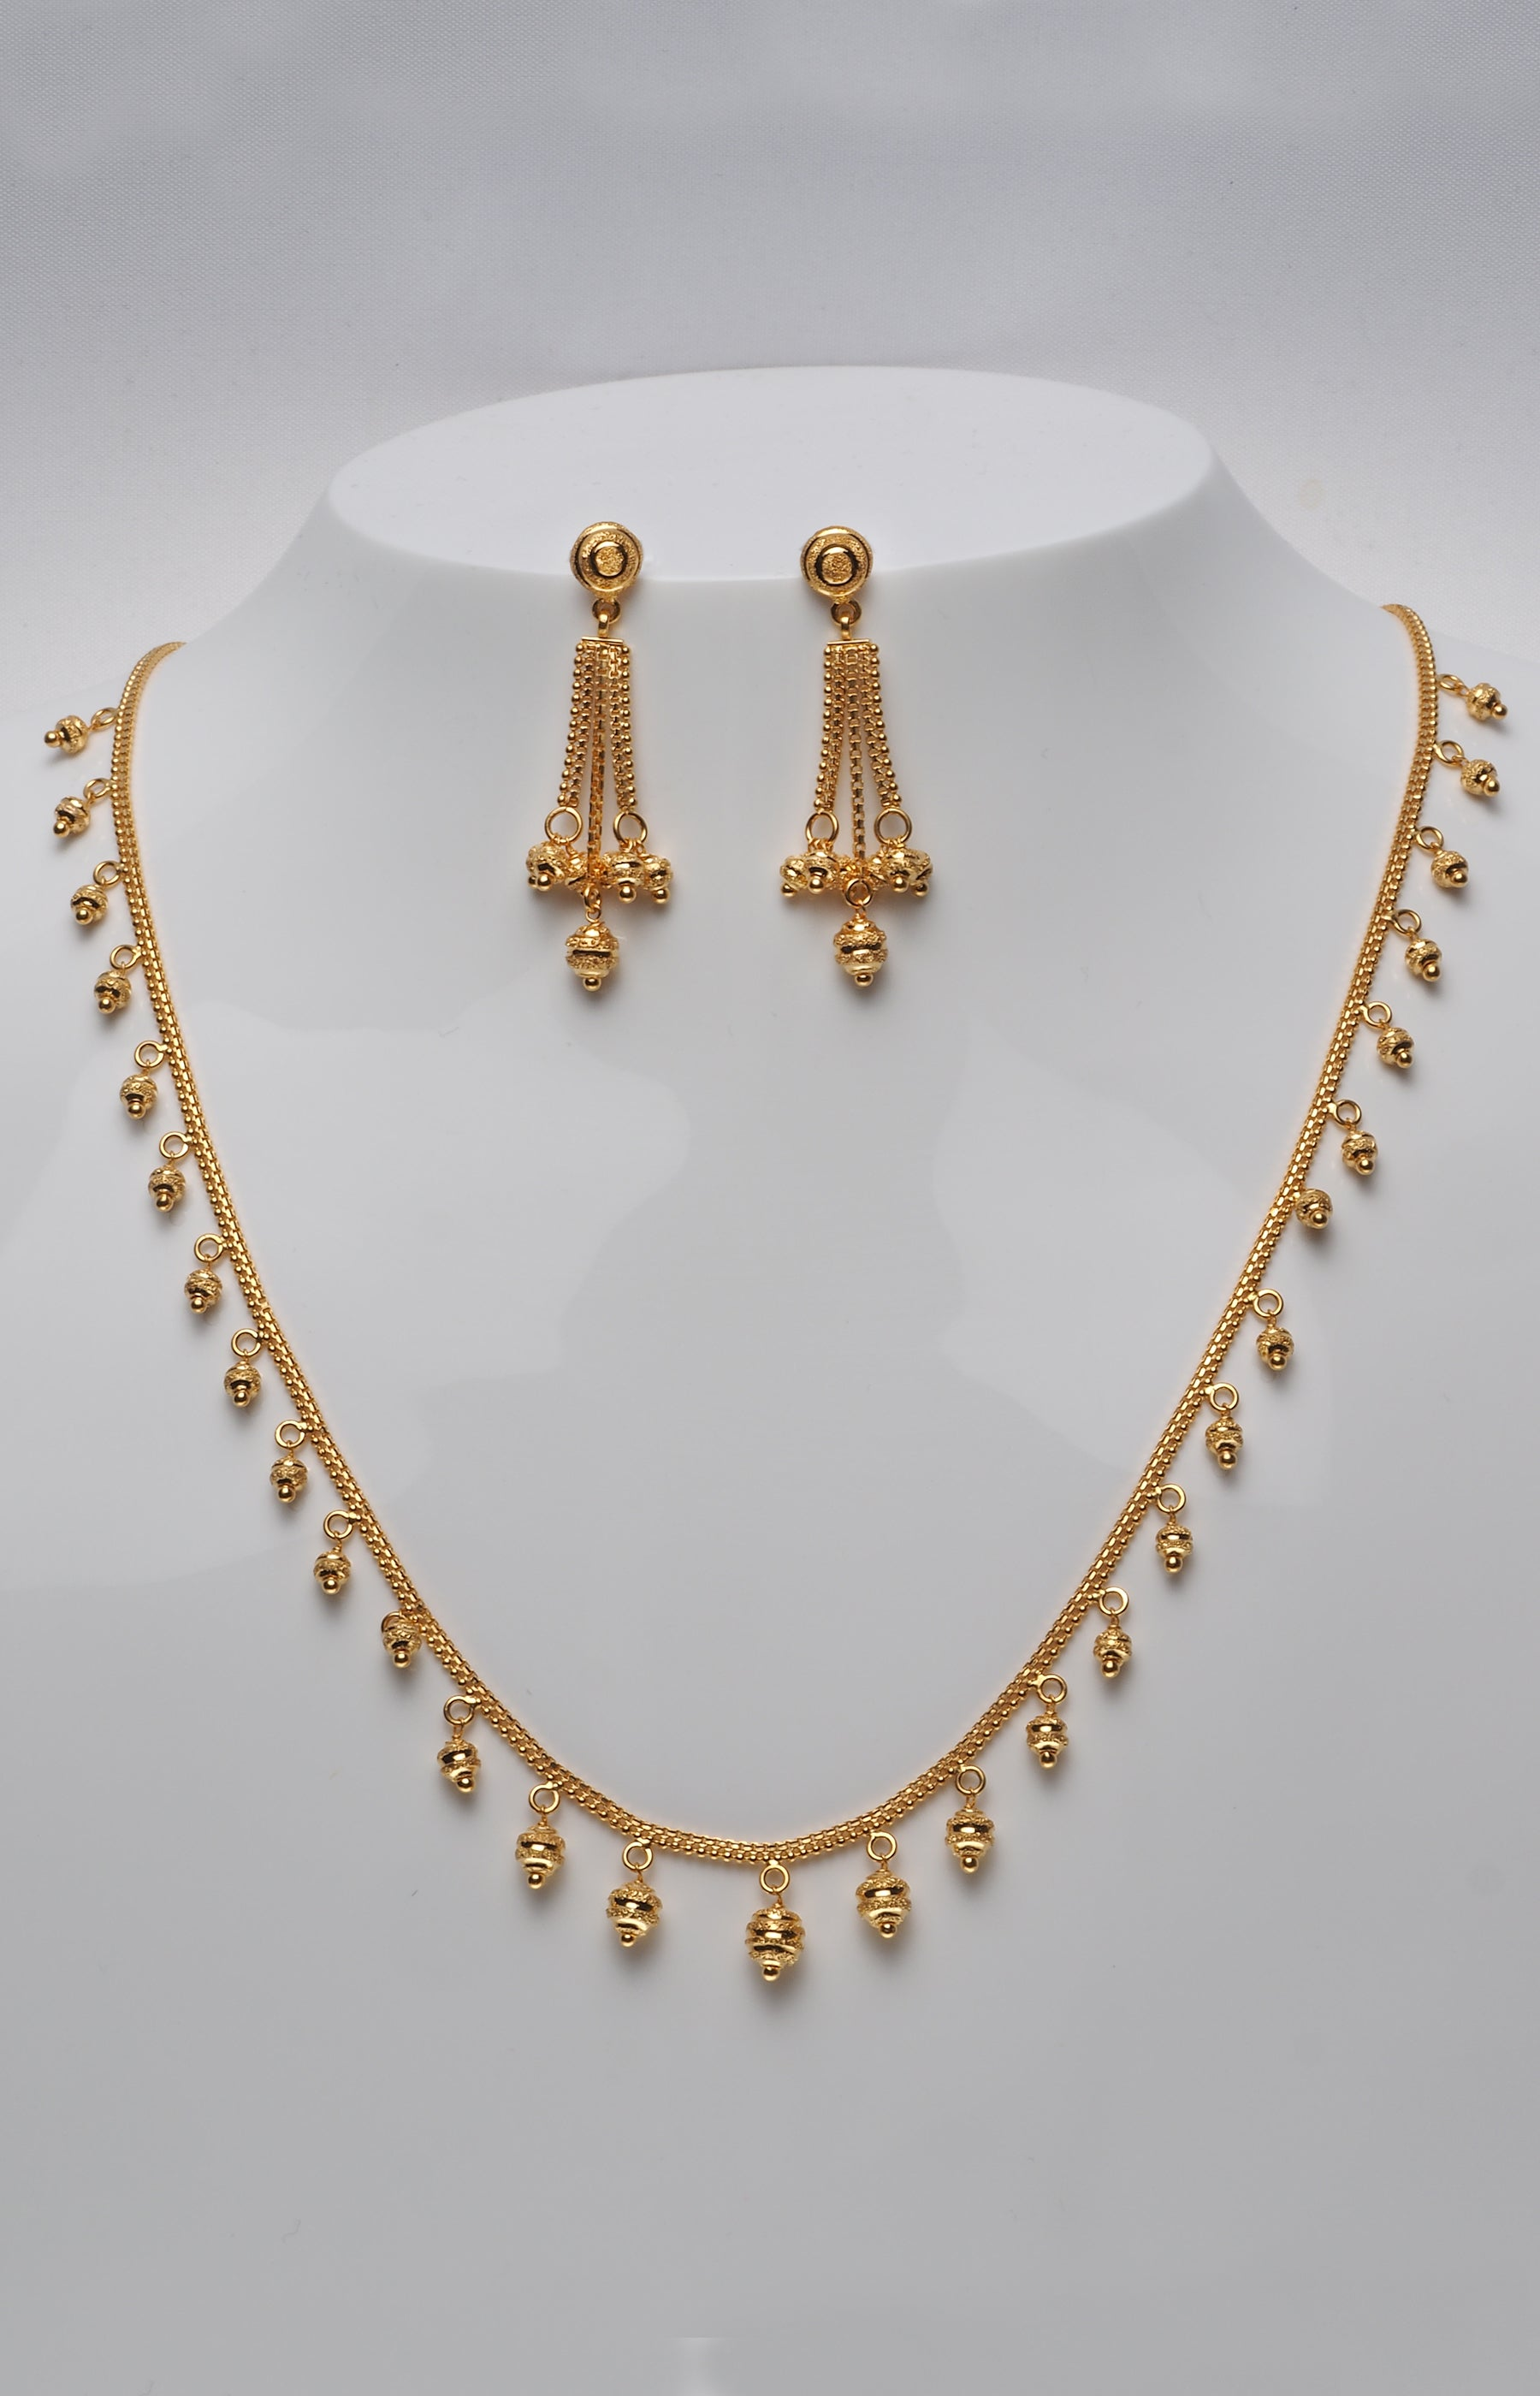 jewellery unicorn shop leivankash gold necklaces necklace